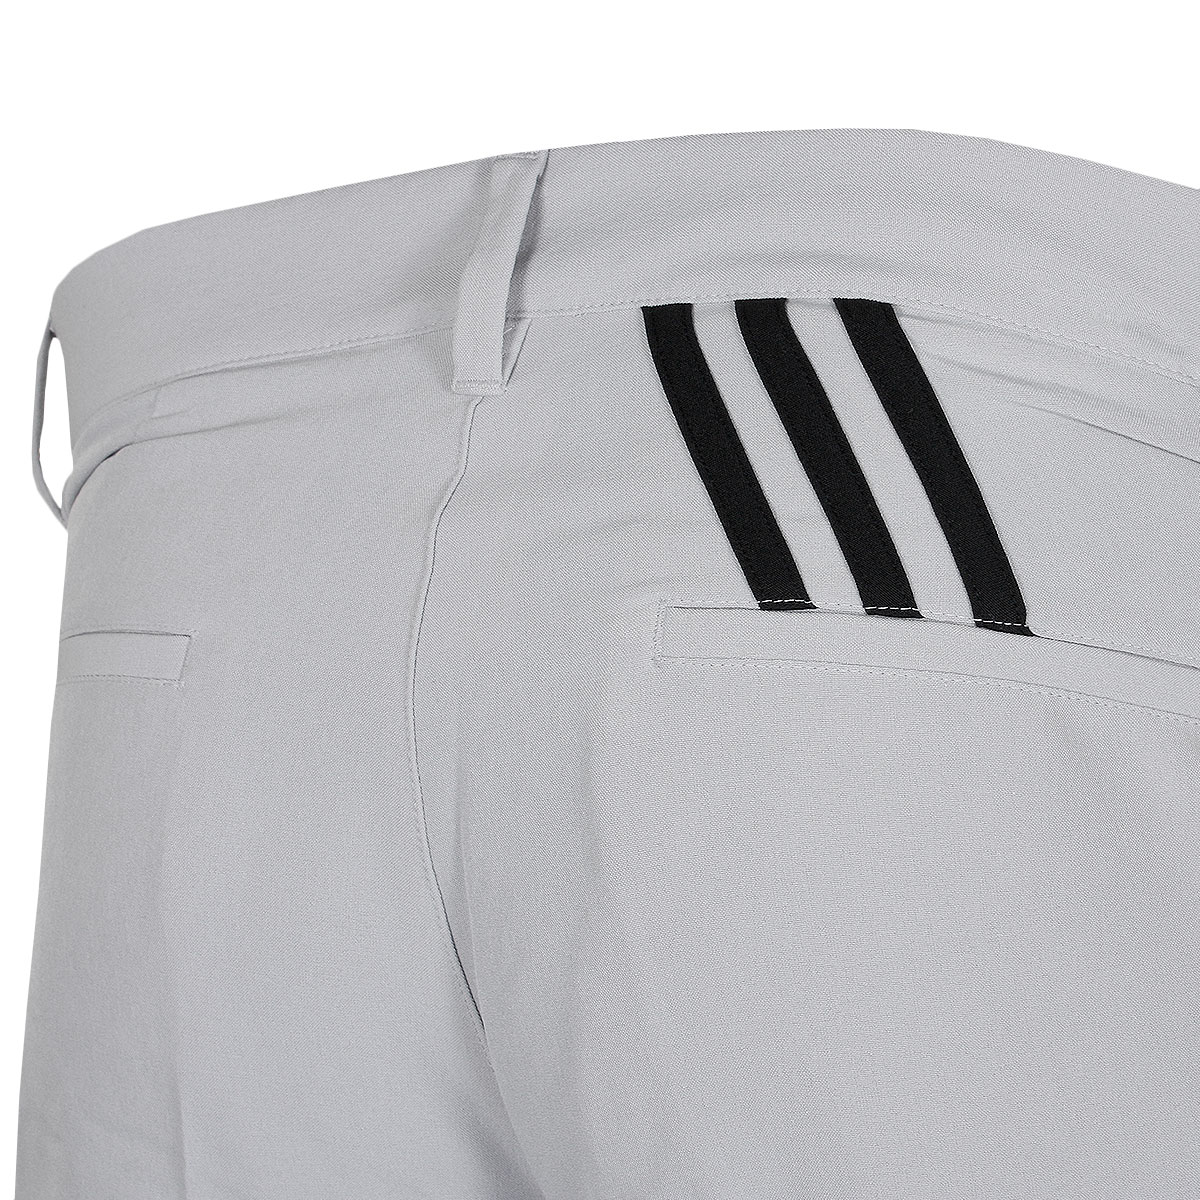 adidas-Golf-Mens-Ultimate-3-Stripes-Stretch-Pant-Trousers-44-OFF-RRP Indexbild 29